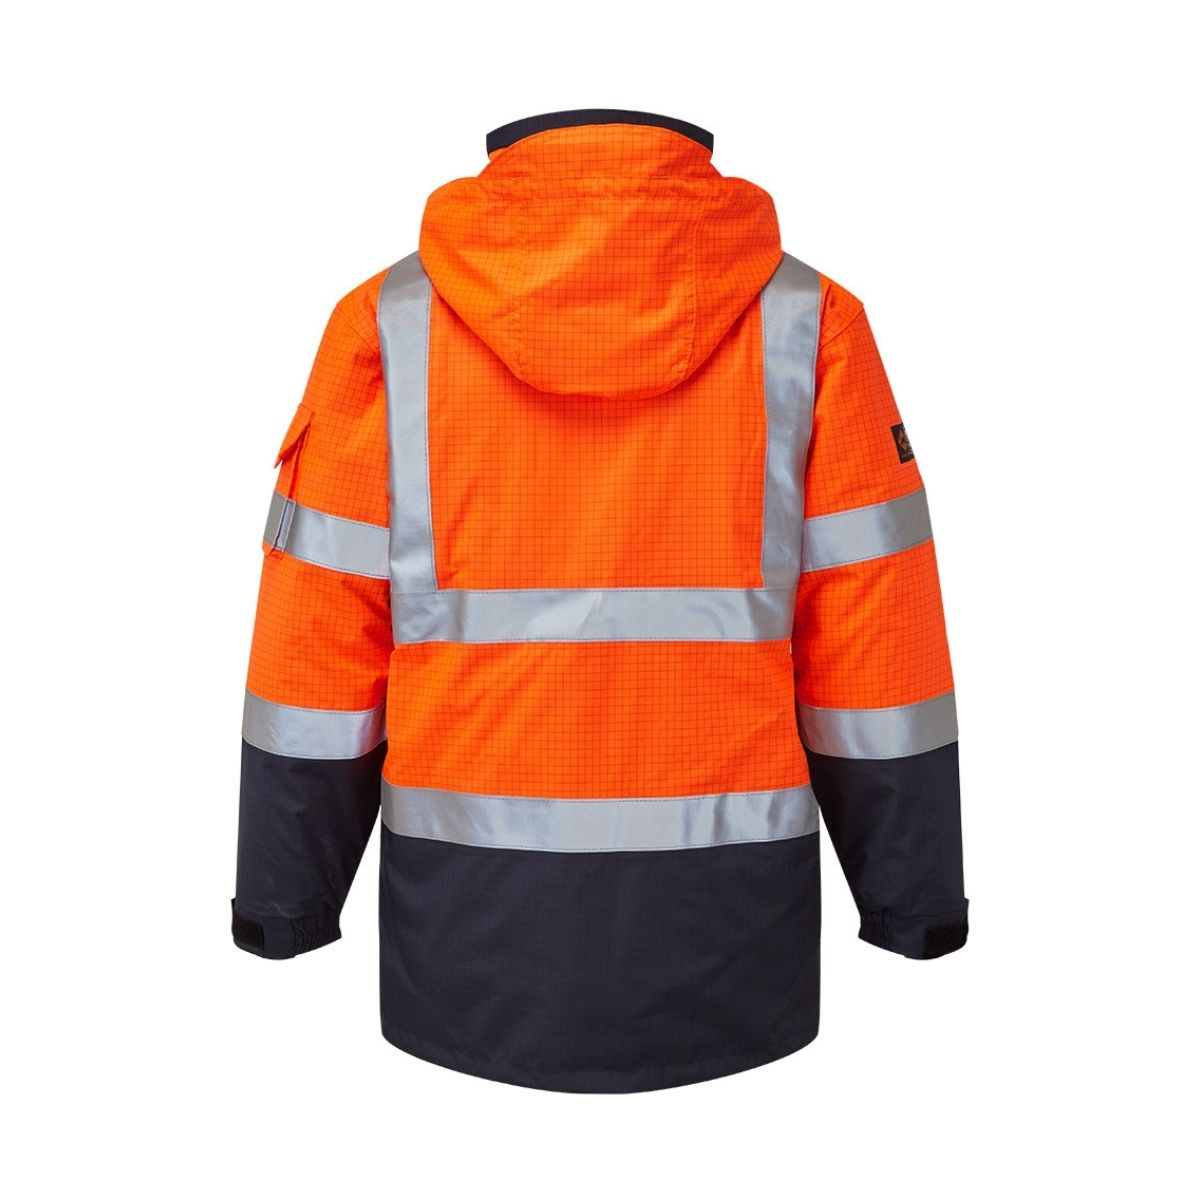 AS9464 HAZTEC® Boulton FR AS Hi-Visibility Waterproof Traffic Jacket - Orange_Navy Back